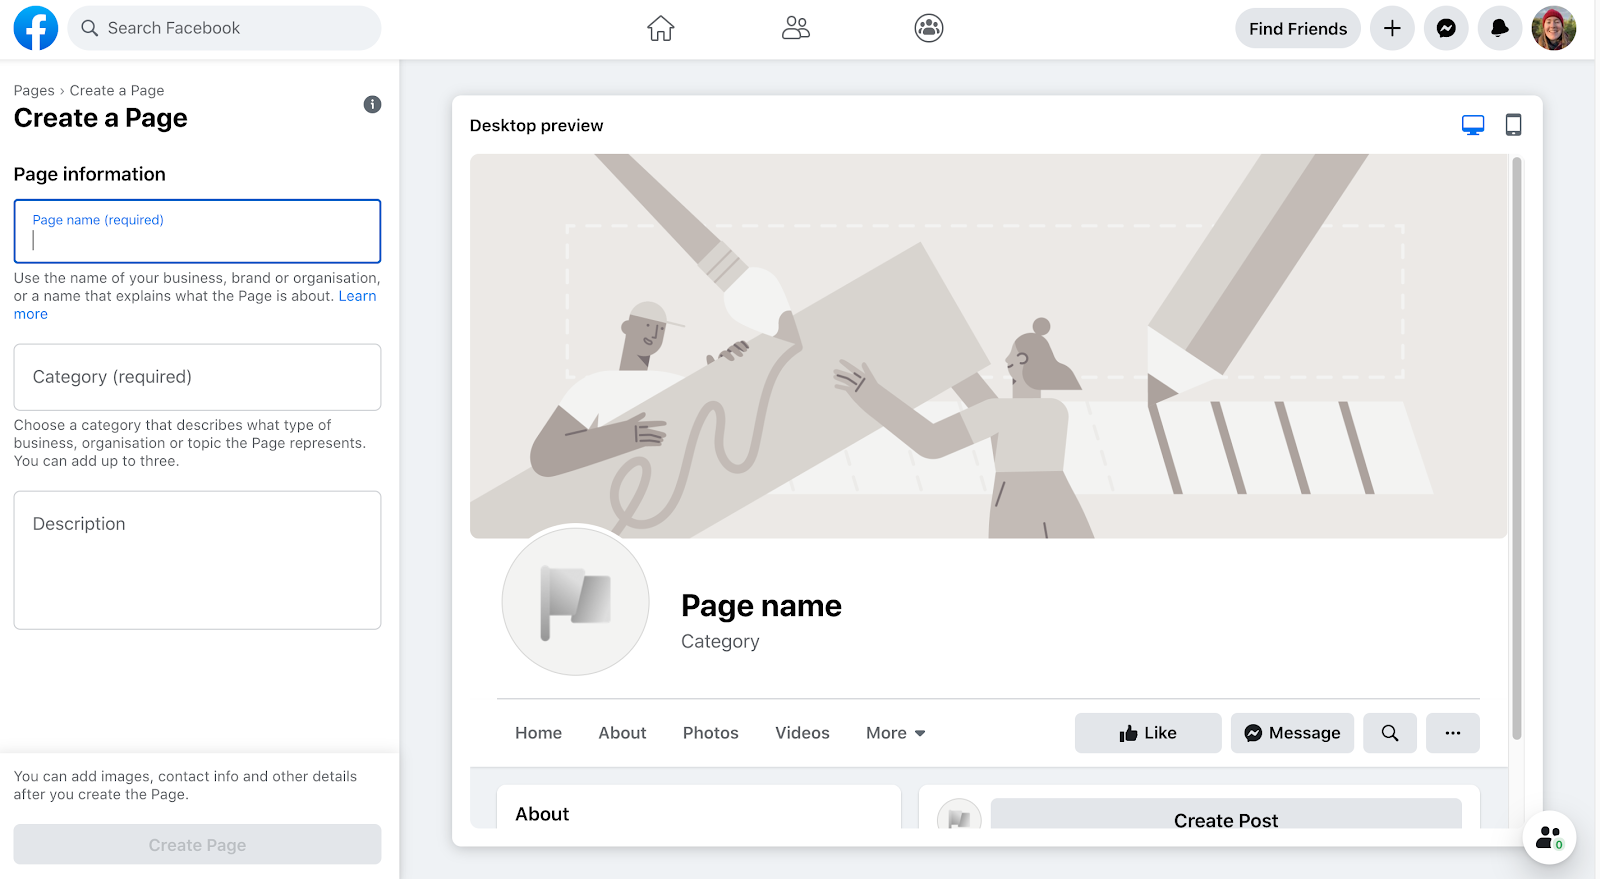 Creating a new page on Facebook